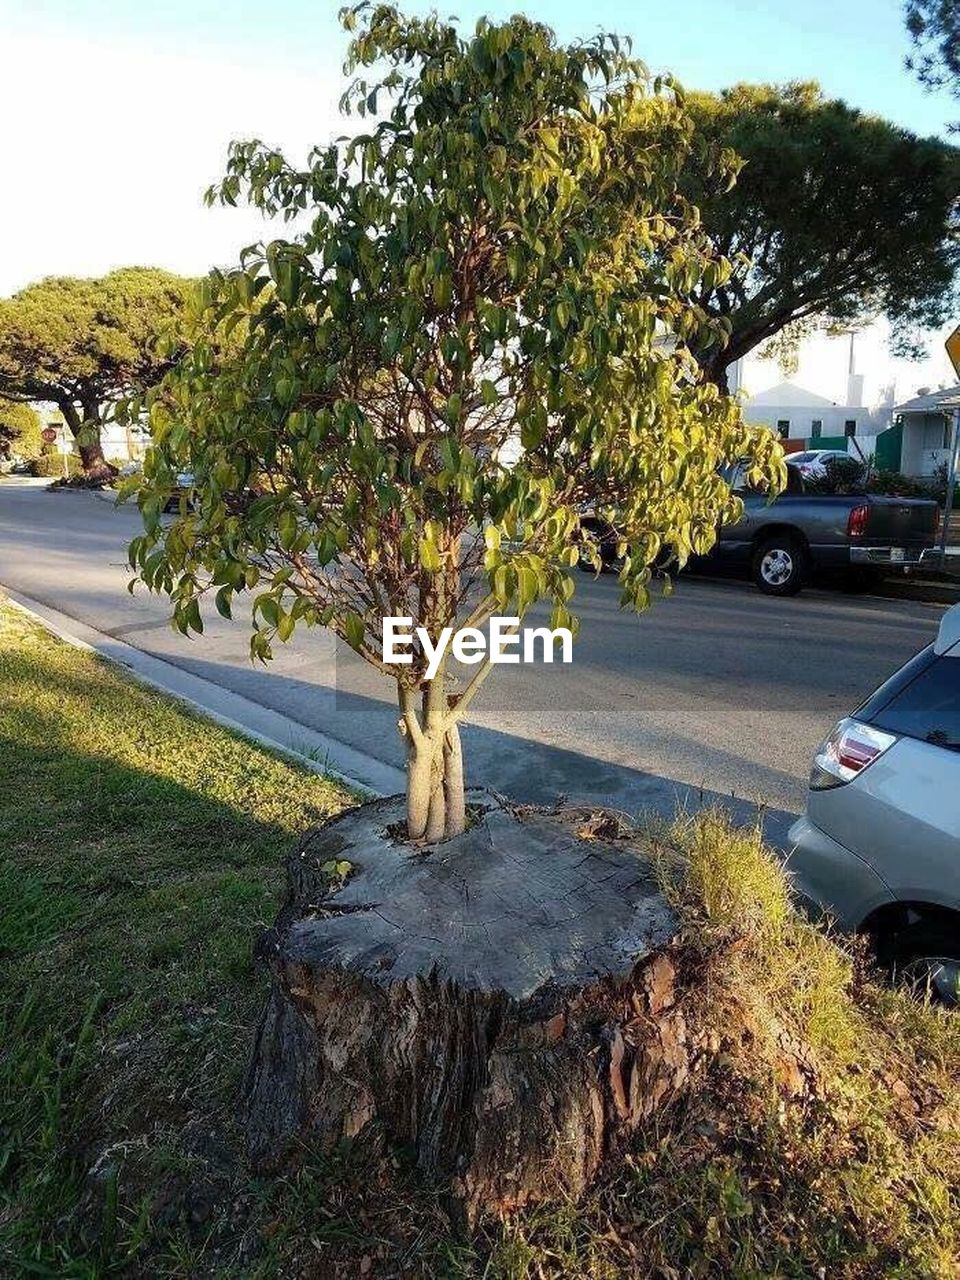 tree, car, transportation, growth, no people, day, road, land vehicle, outdoors, nature, plant, sky